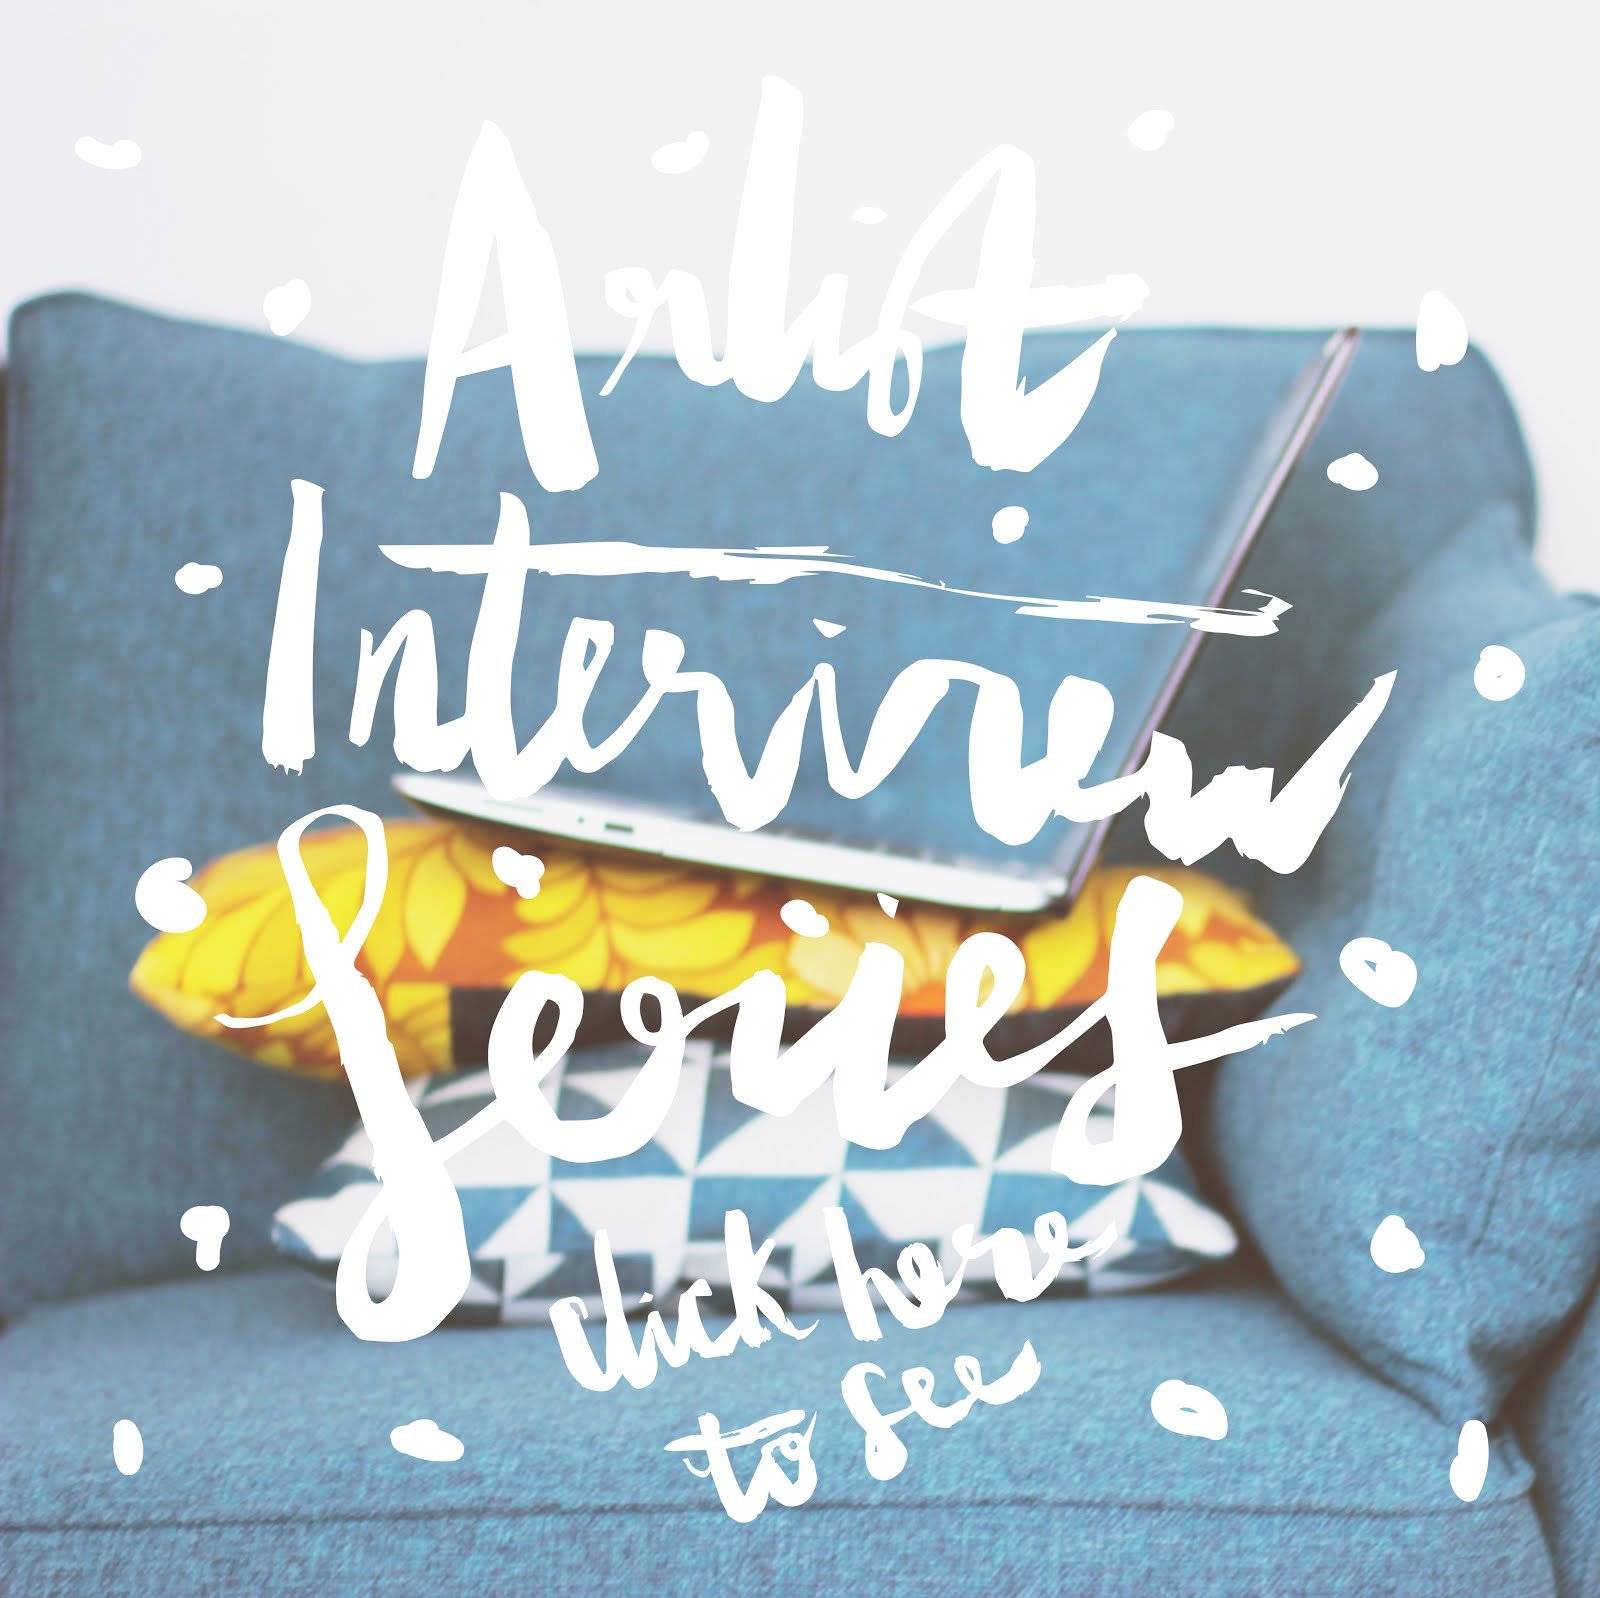 WANT TO SEE THE ARTIST INTERVIEW SERIES?